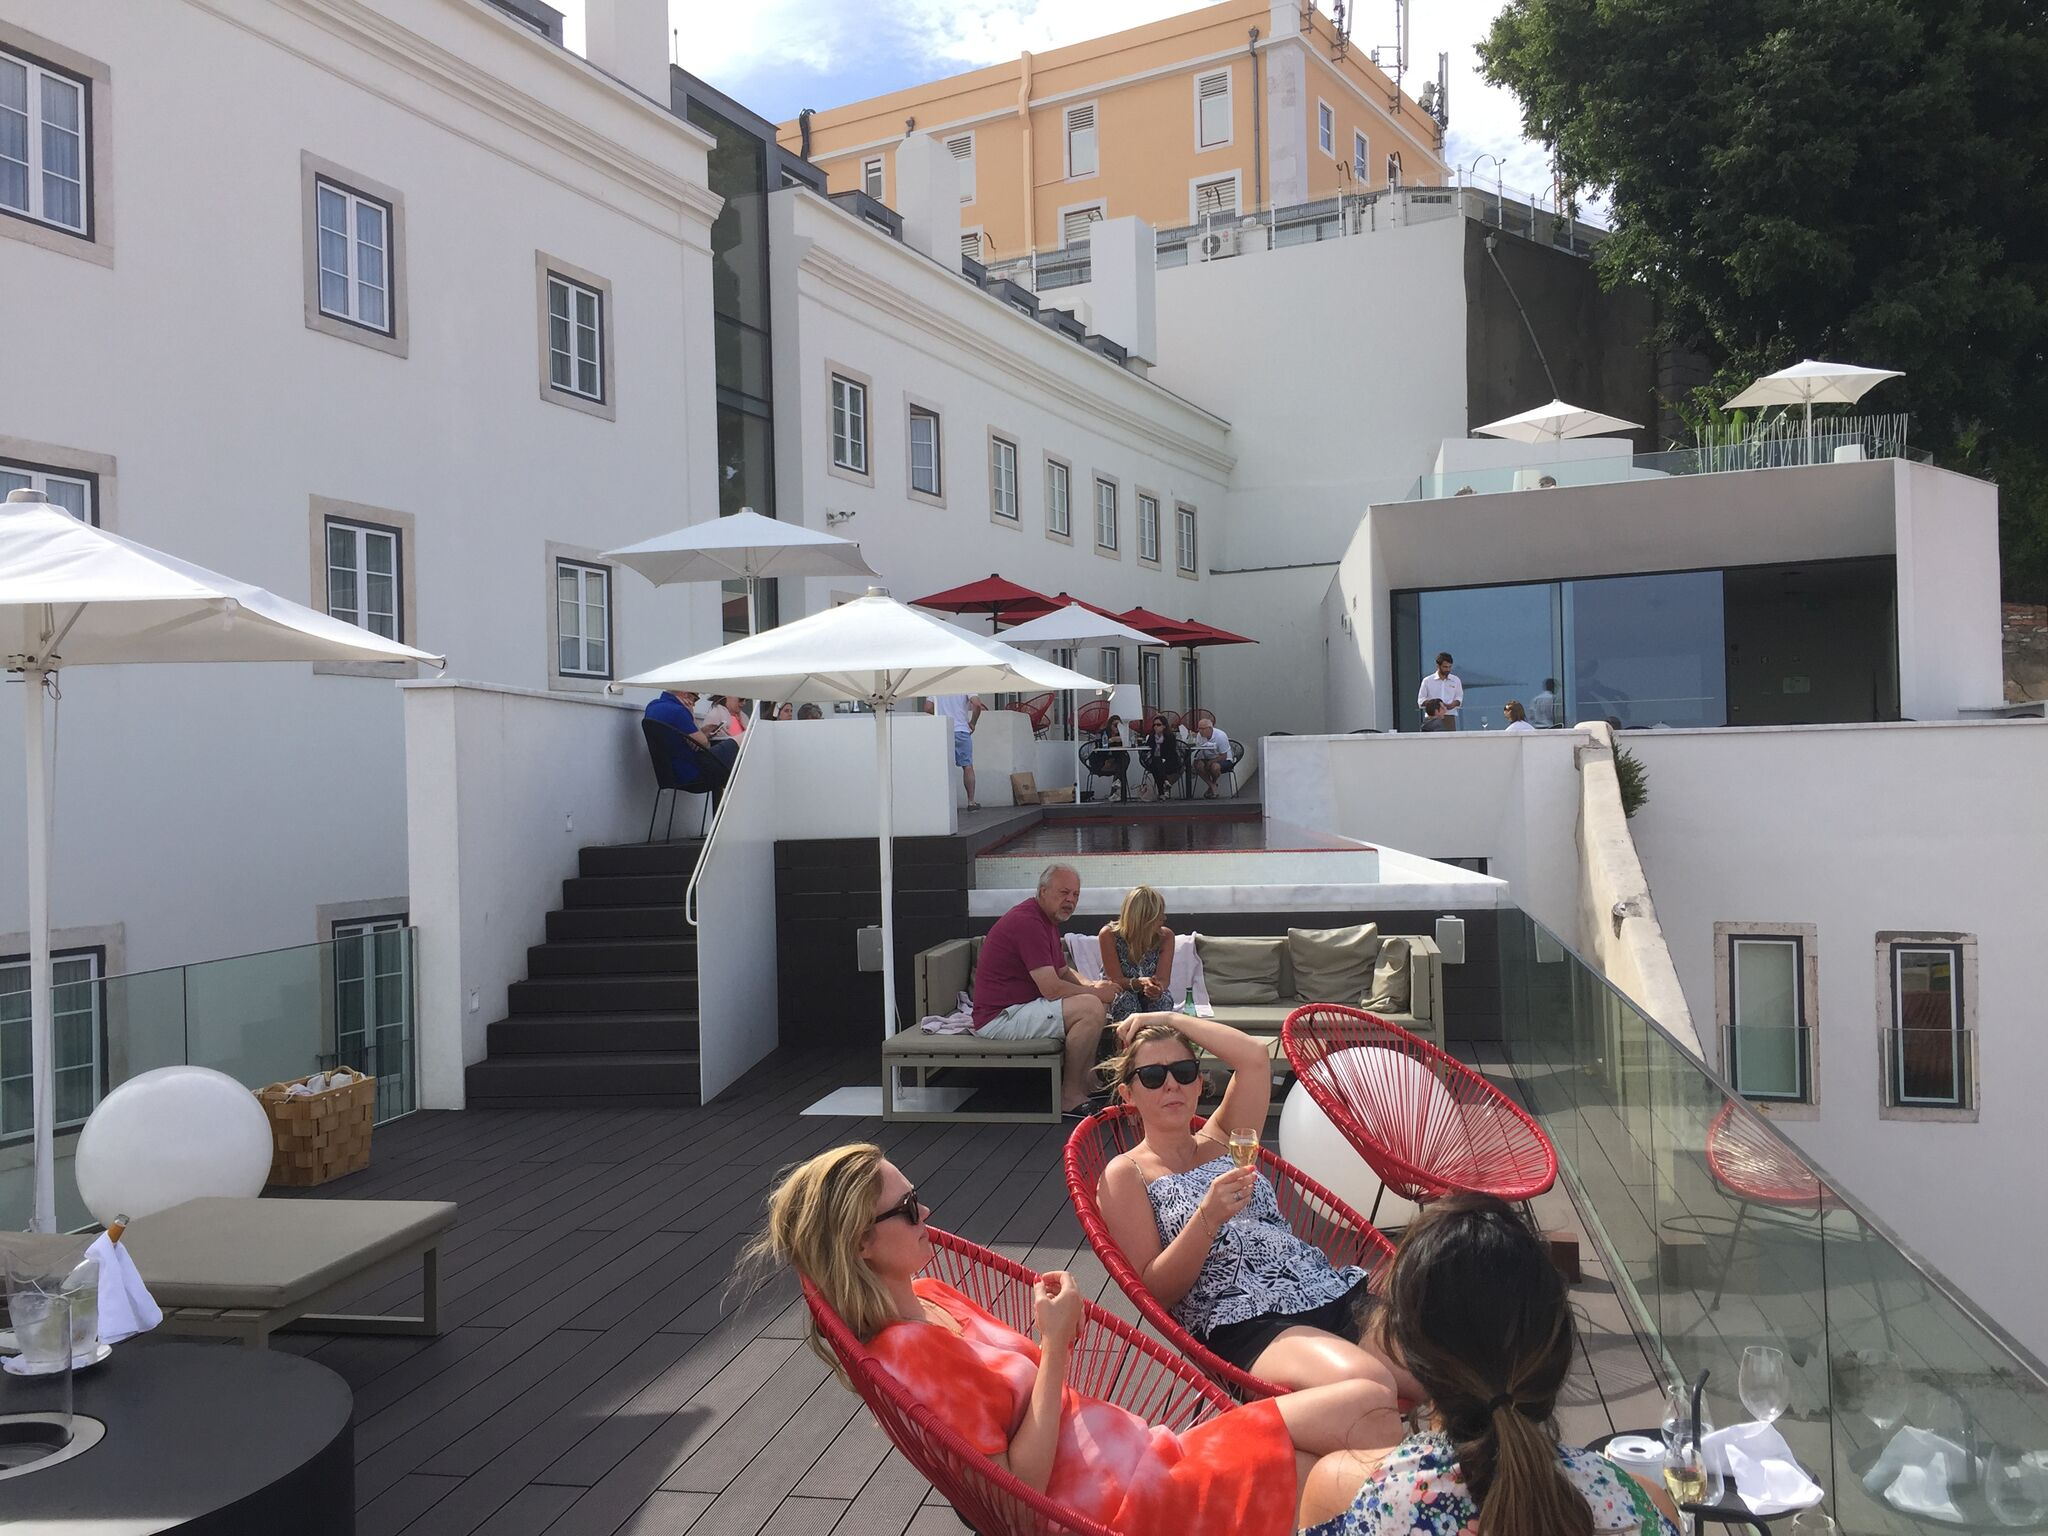 IMG 4729 1024x768 - 10+ Best Rooftop Bars To Catch Lisbon's Mesmerizing Sunsets